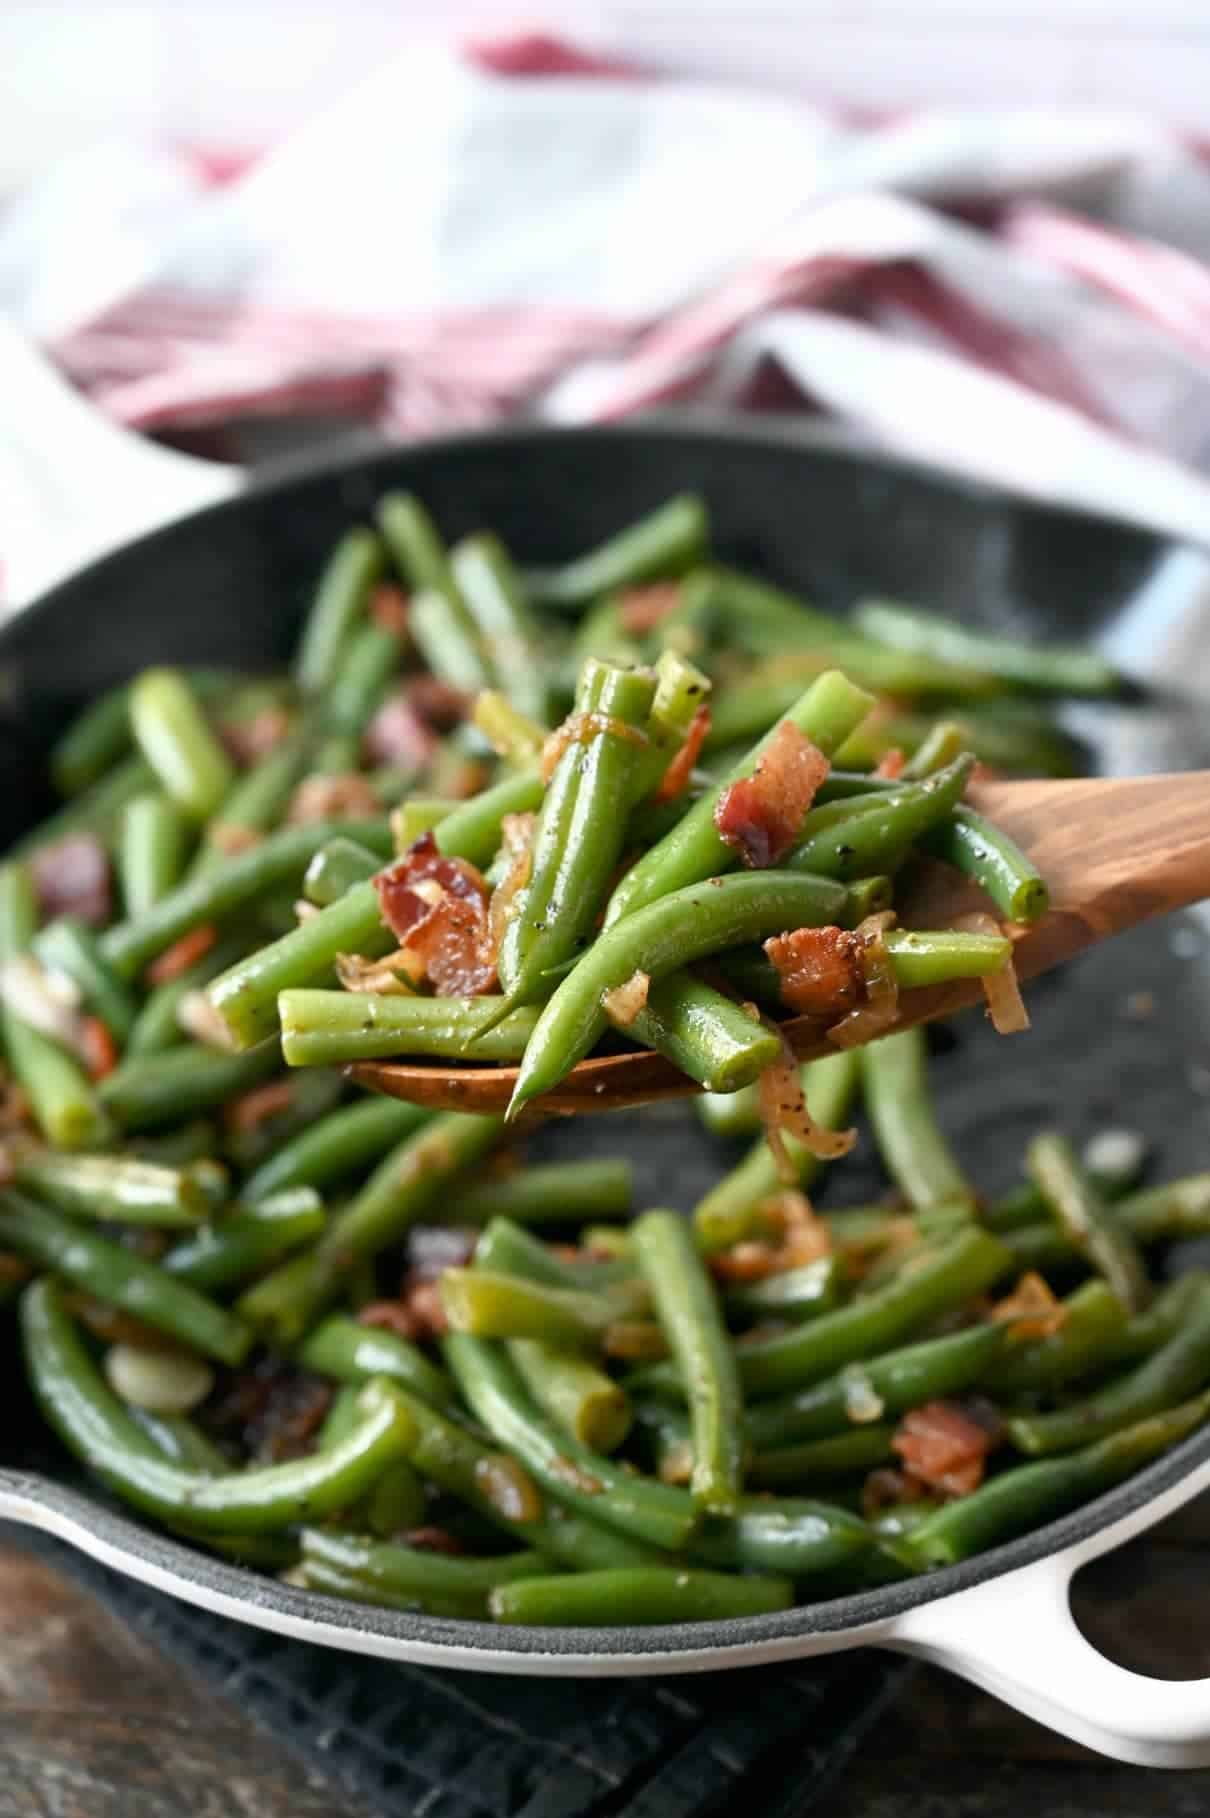 Green beans and bacon in a skillet with a wooden spoon picking up a scoop.